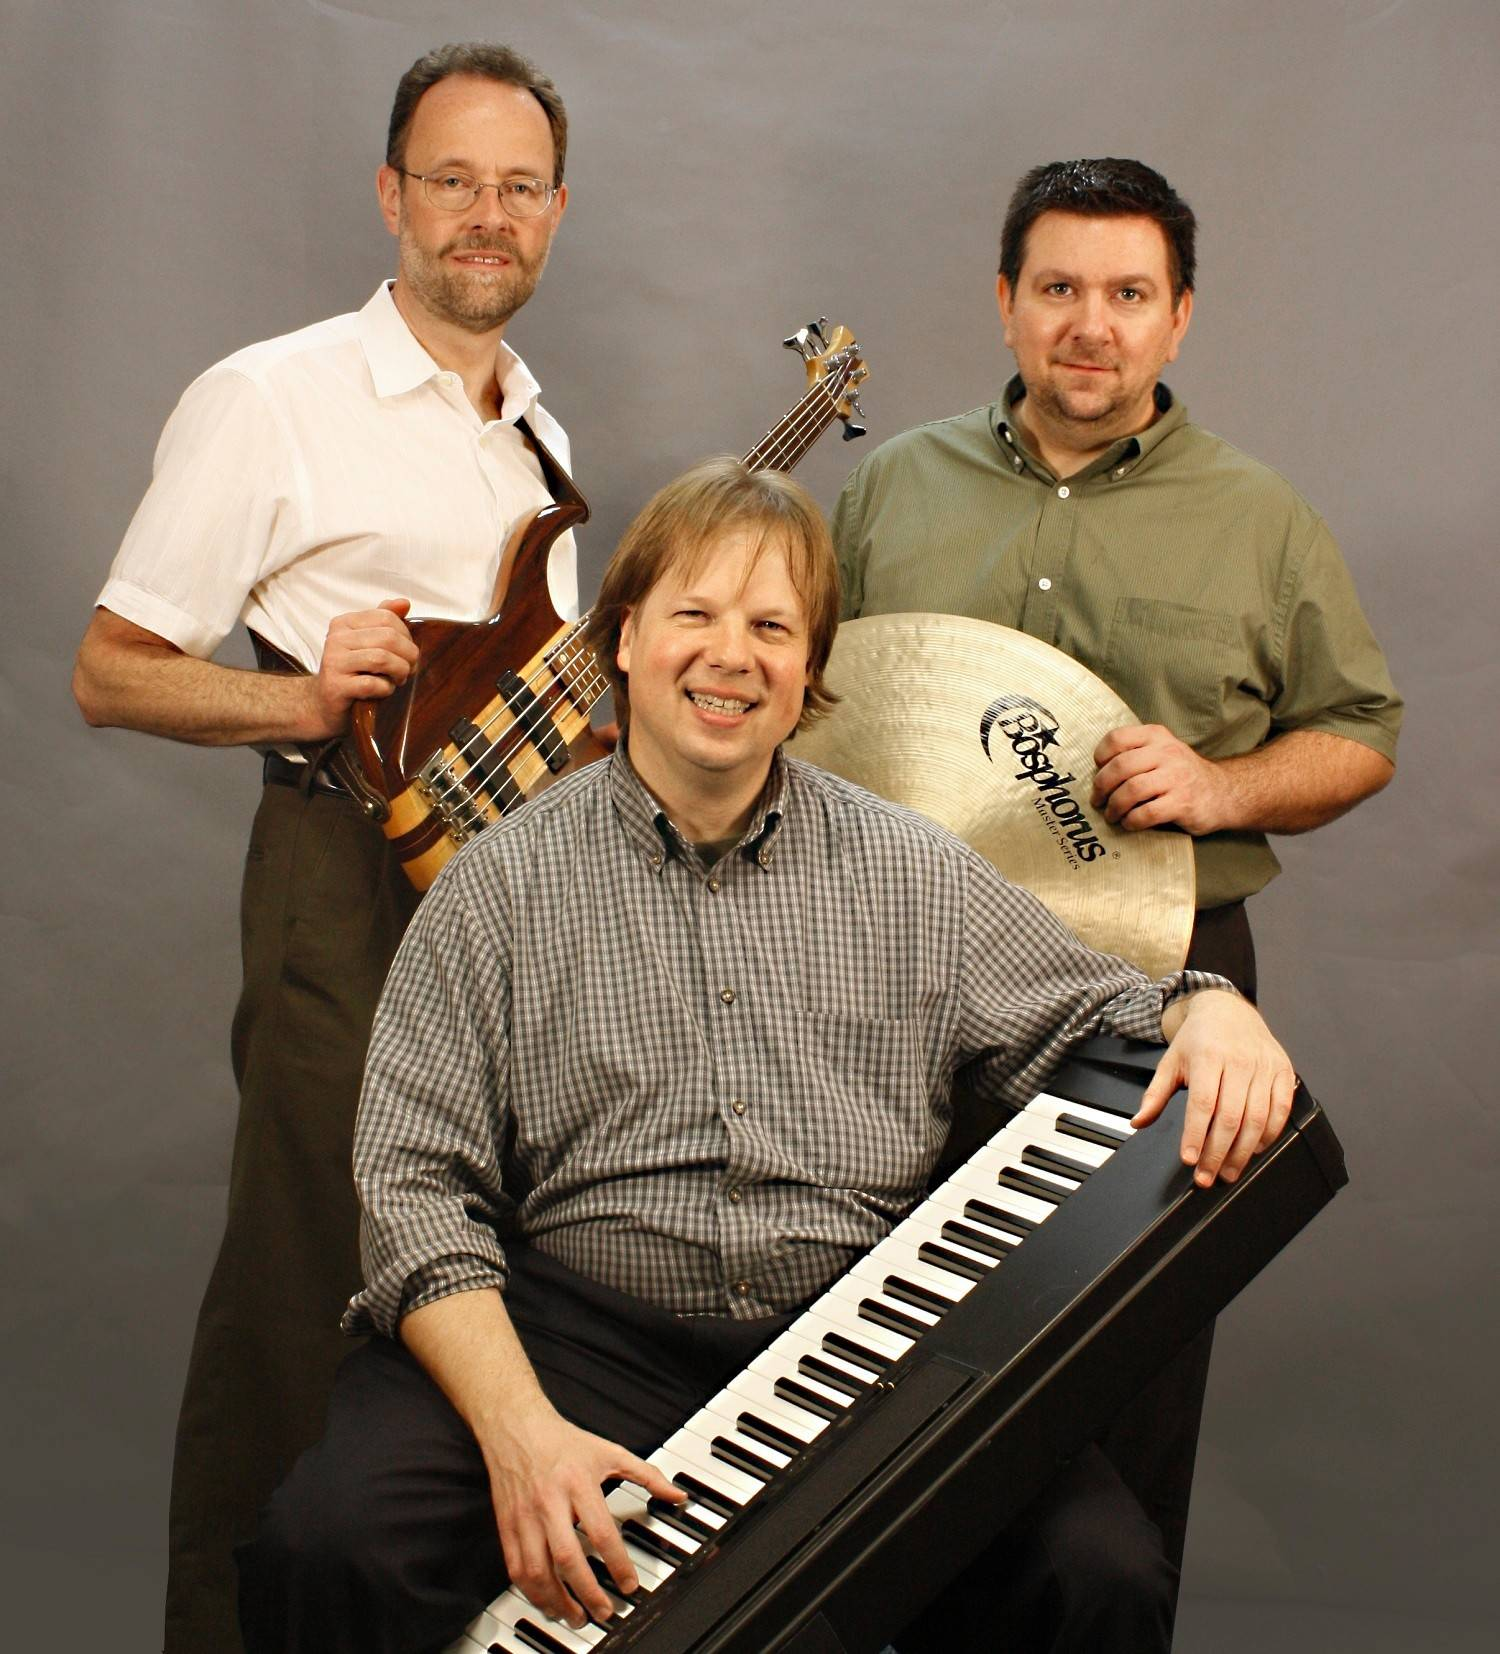 The Ken Spurr Jazz Quartet will perform a variety of standard and contemporary jazz selections at Harper College's the 43rd annual Dinner and Jazz Concert June 24.